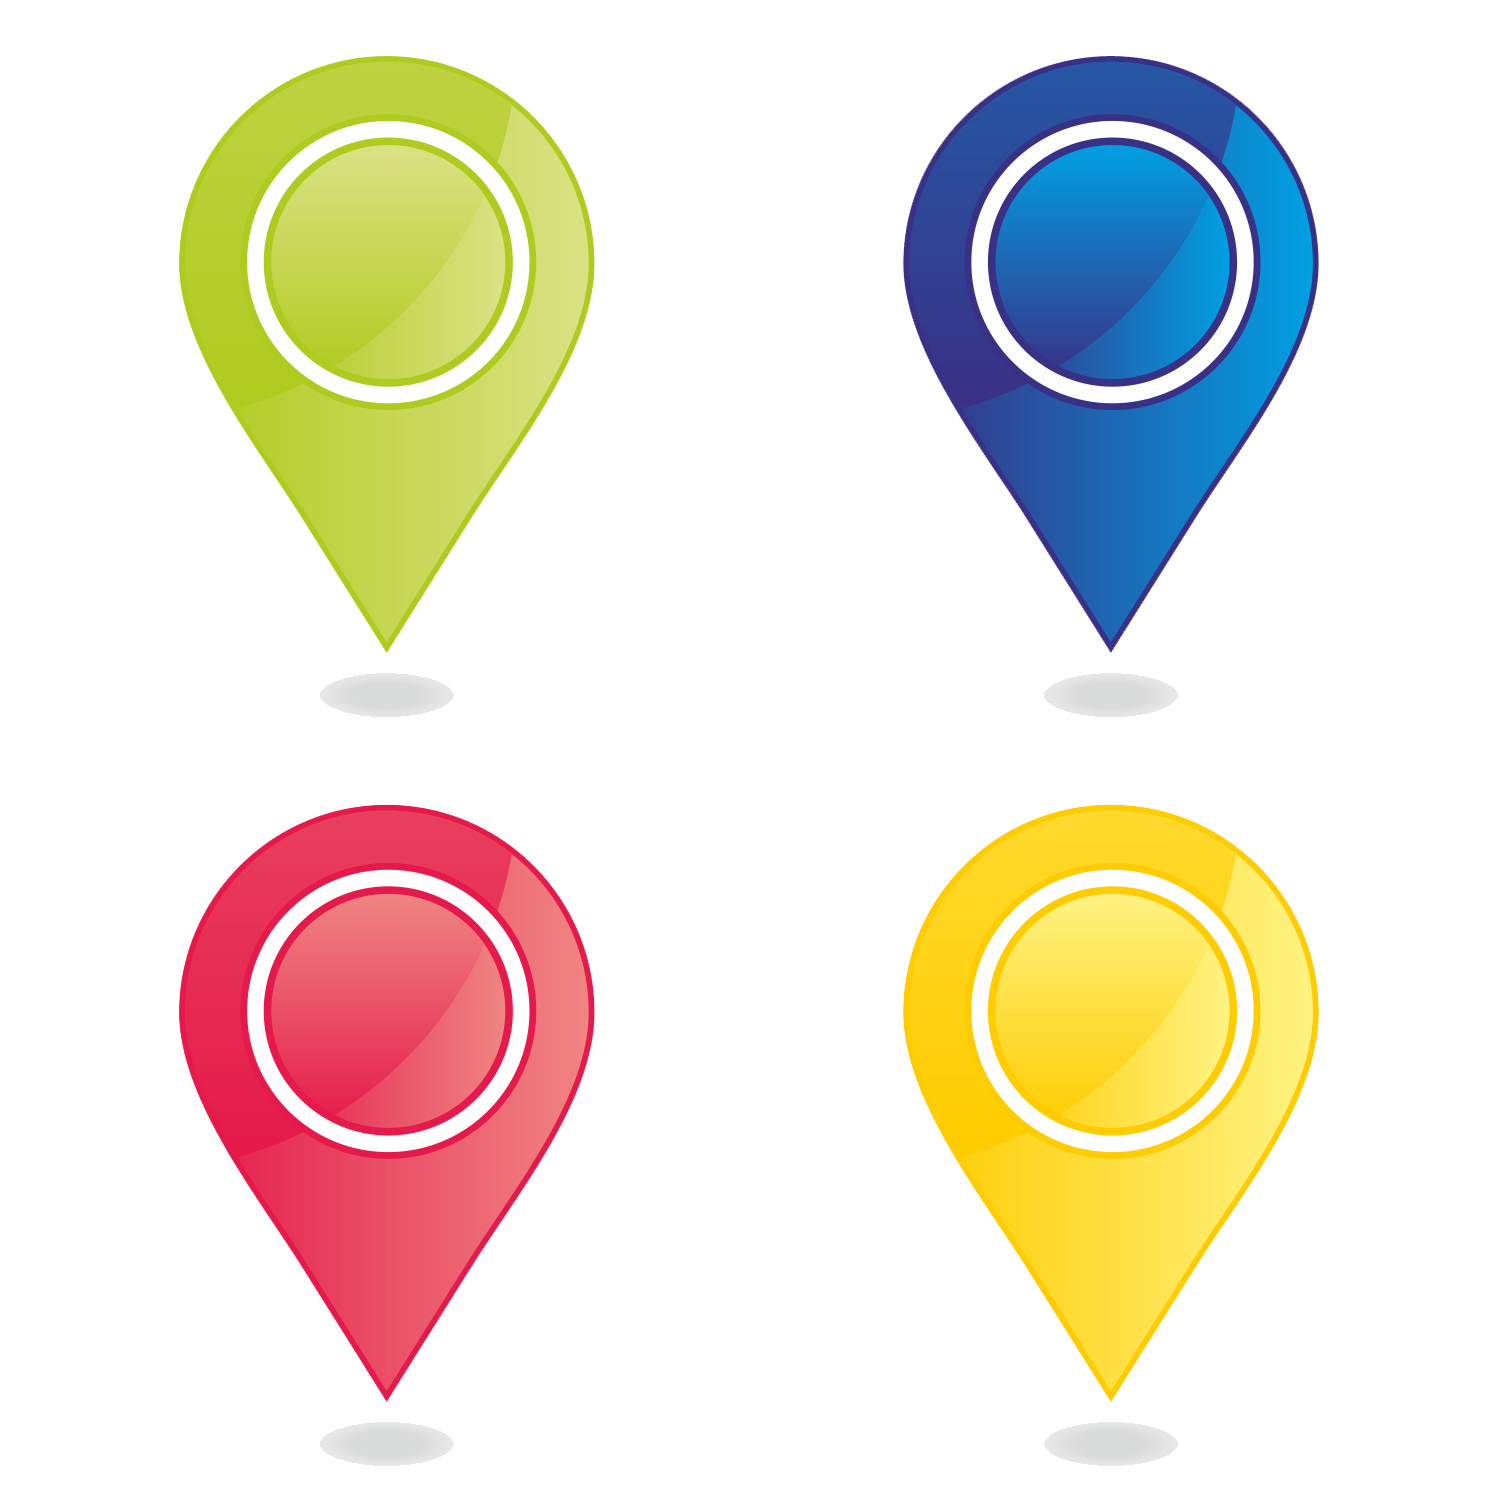 Map marker png images. Markers clipart transparent background